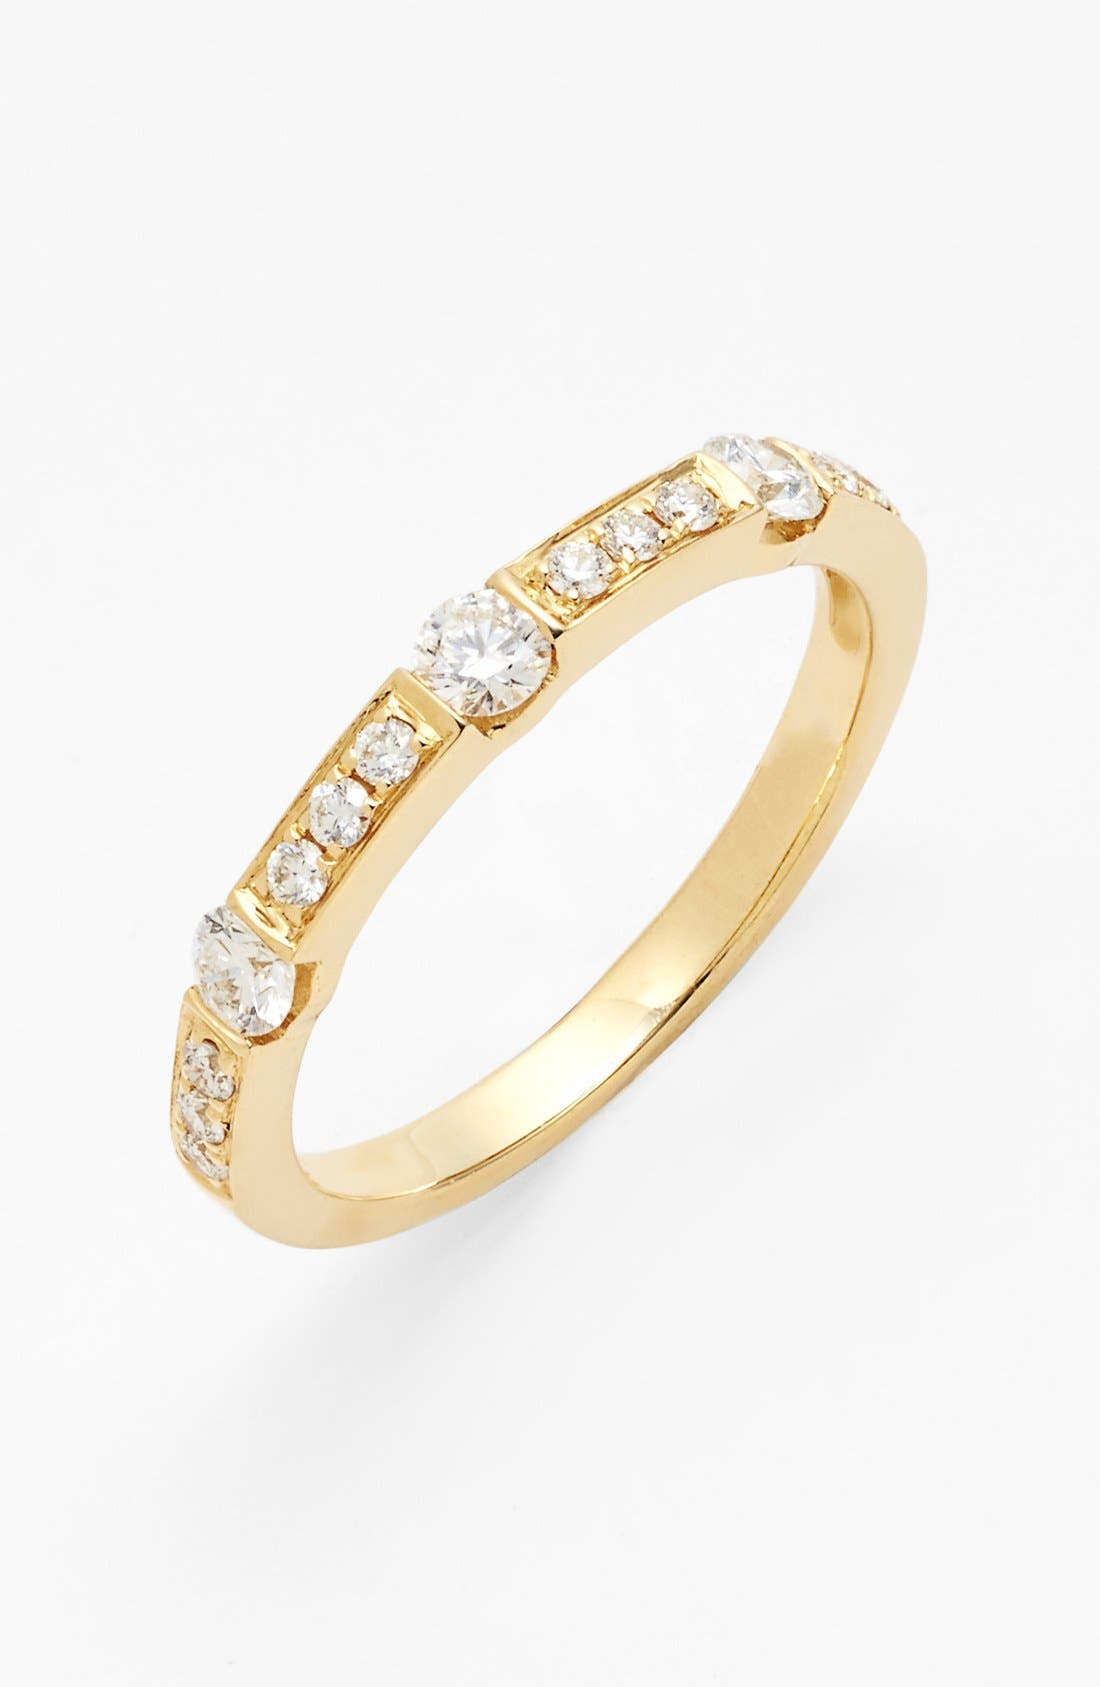 Main Image - Bony Levy 'Linea' Diamond Band Ring (Nordstrom Exclusive)